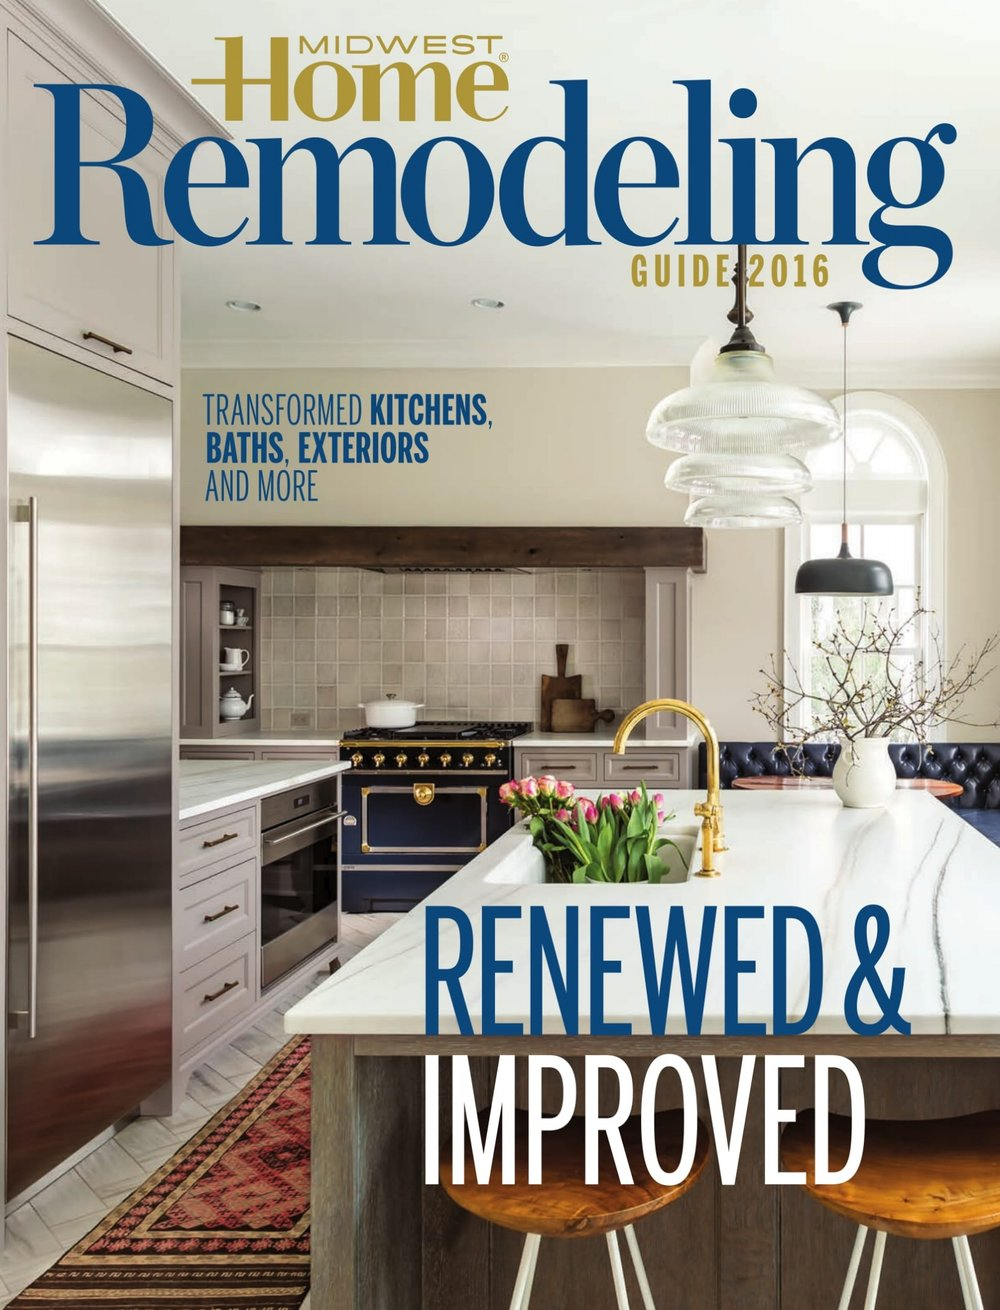 REMODELING GUIDE 2016-ISLES KITCHEN